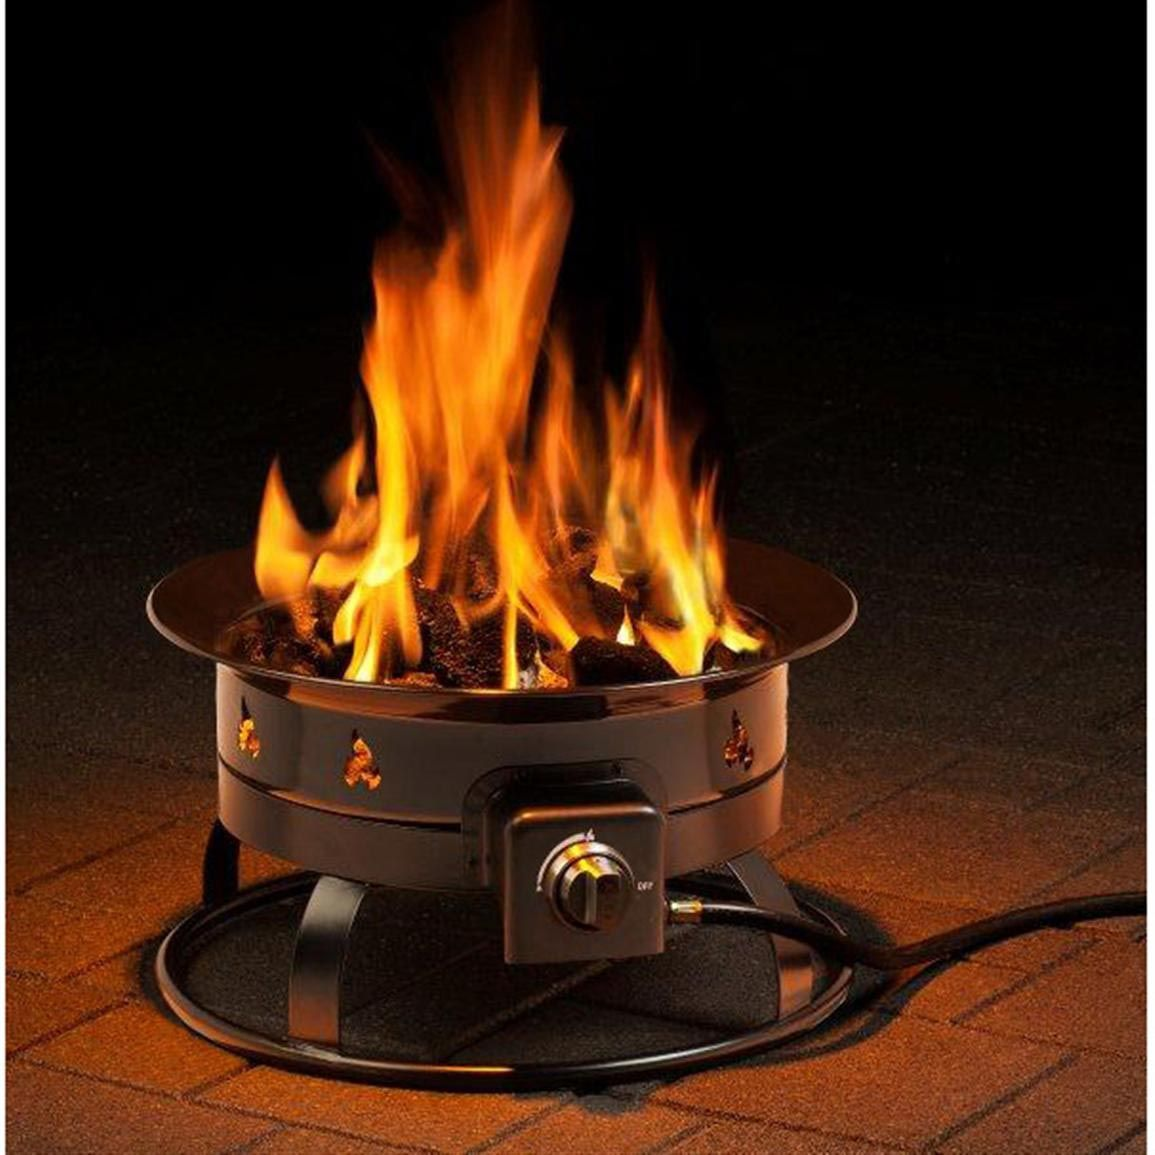 Coleman Propane Gas Fire Pit Propane Fire Pit Portable Fire Pits Fire Pit Materials